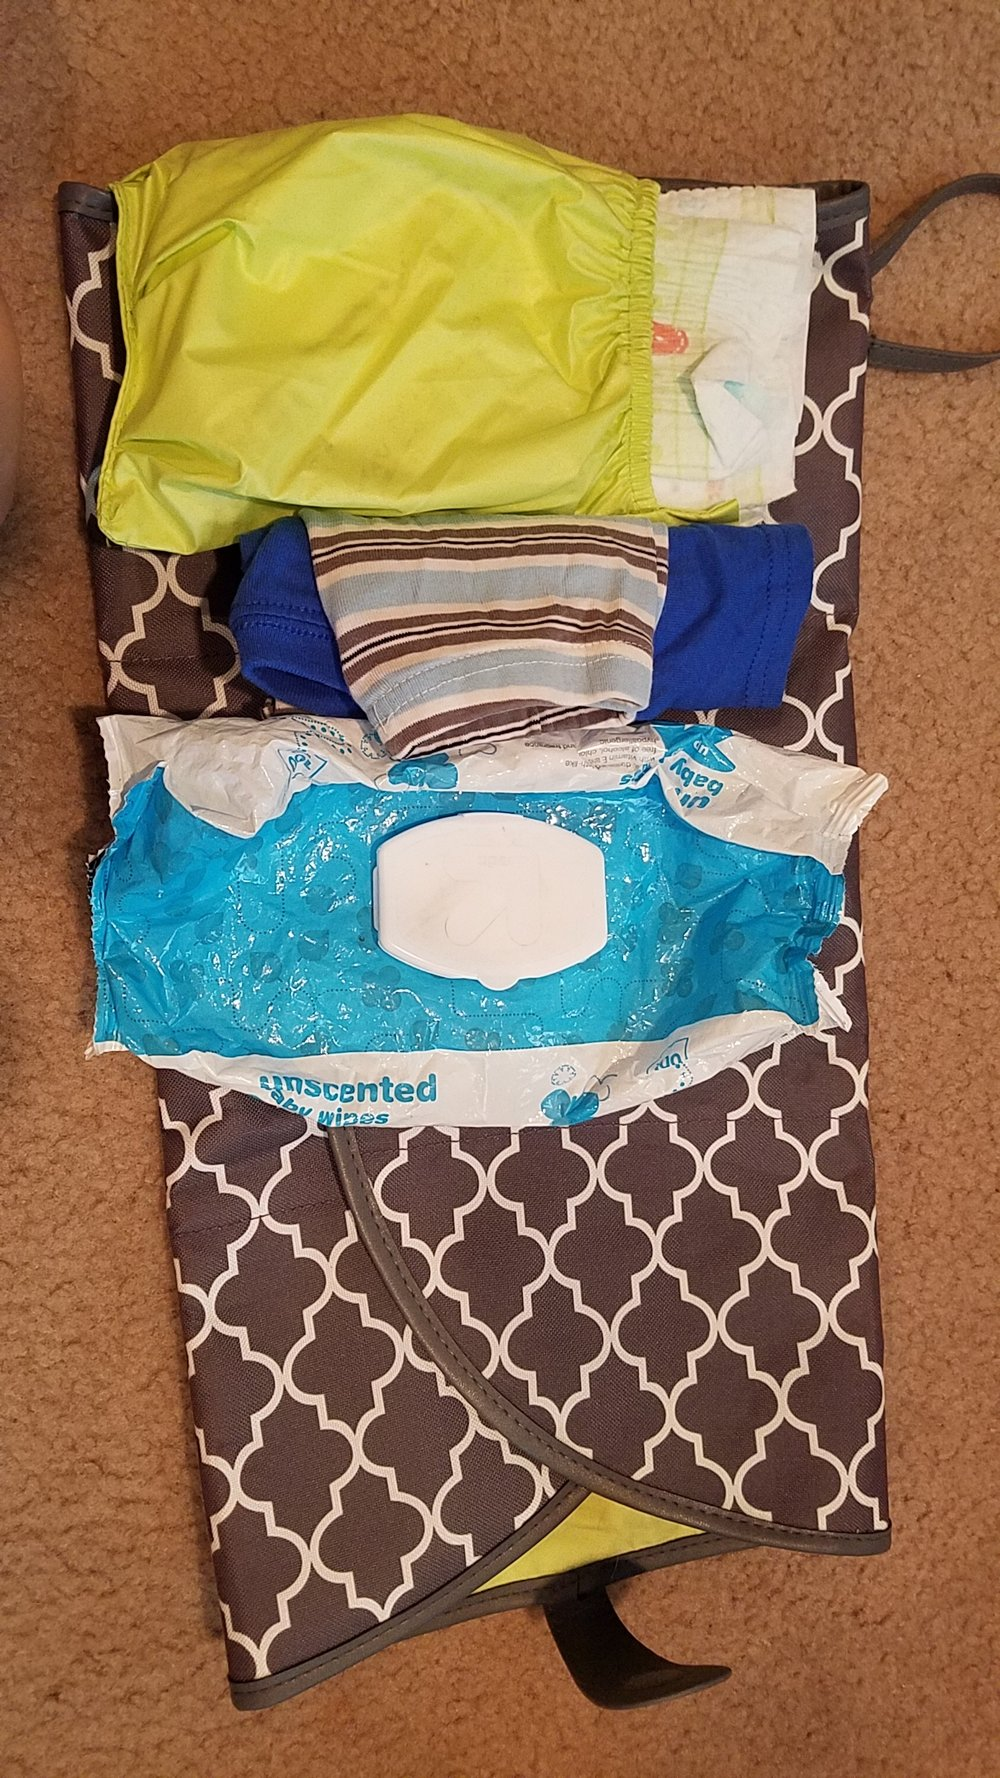 This a diaper changing mat that I am able to fit one complete set of extra clothes, two diapers, and a pack of wipes.